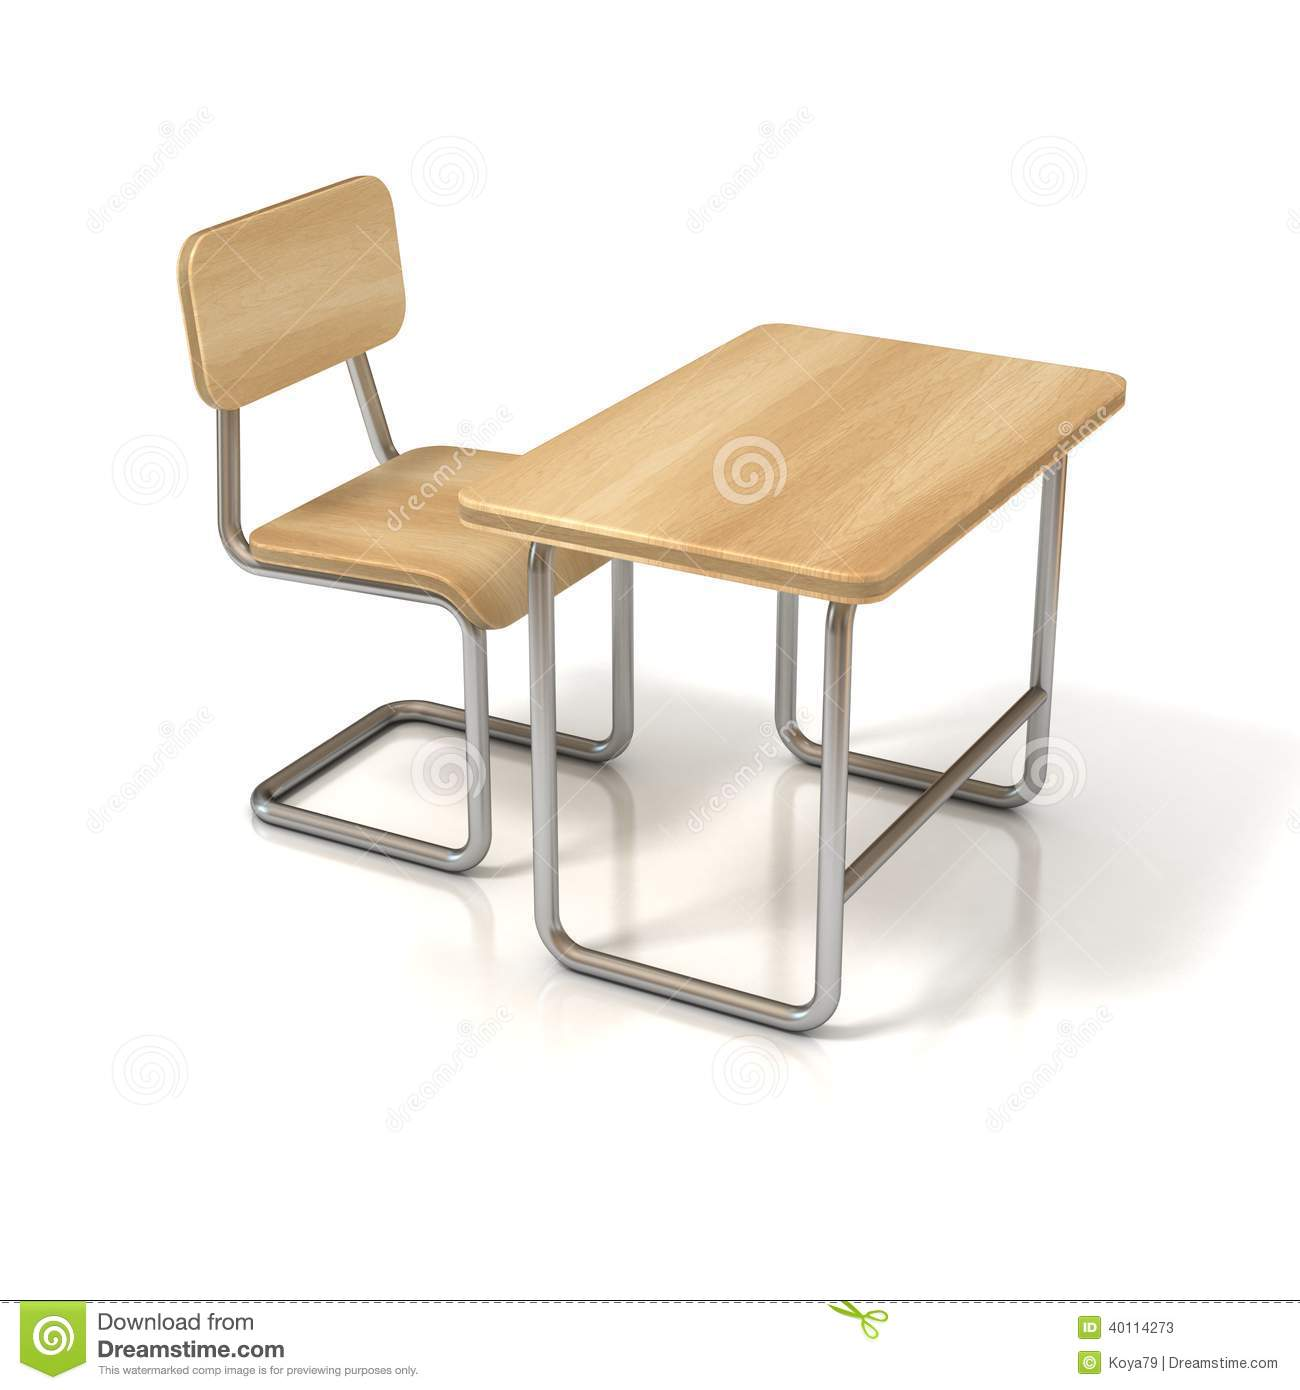 School desk and chair on white background. School Desk Background